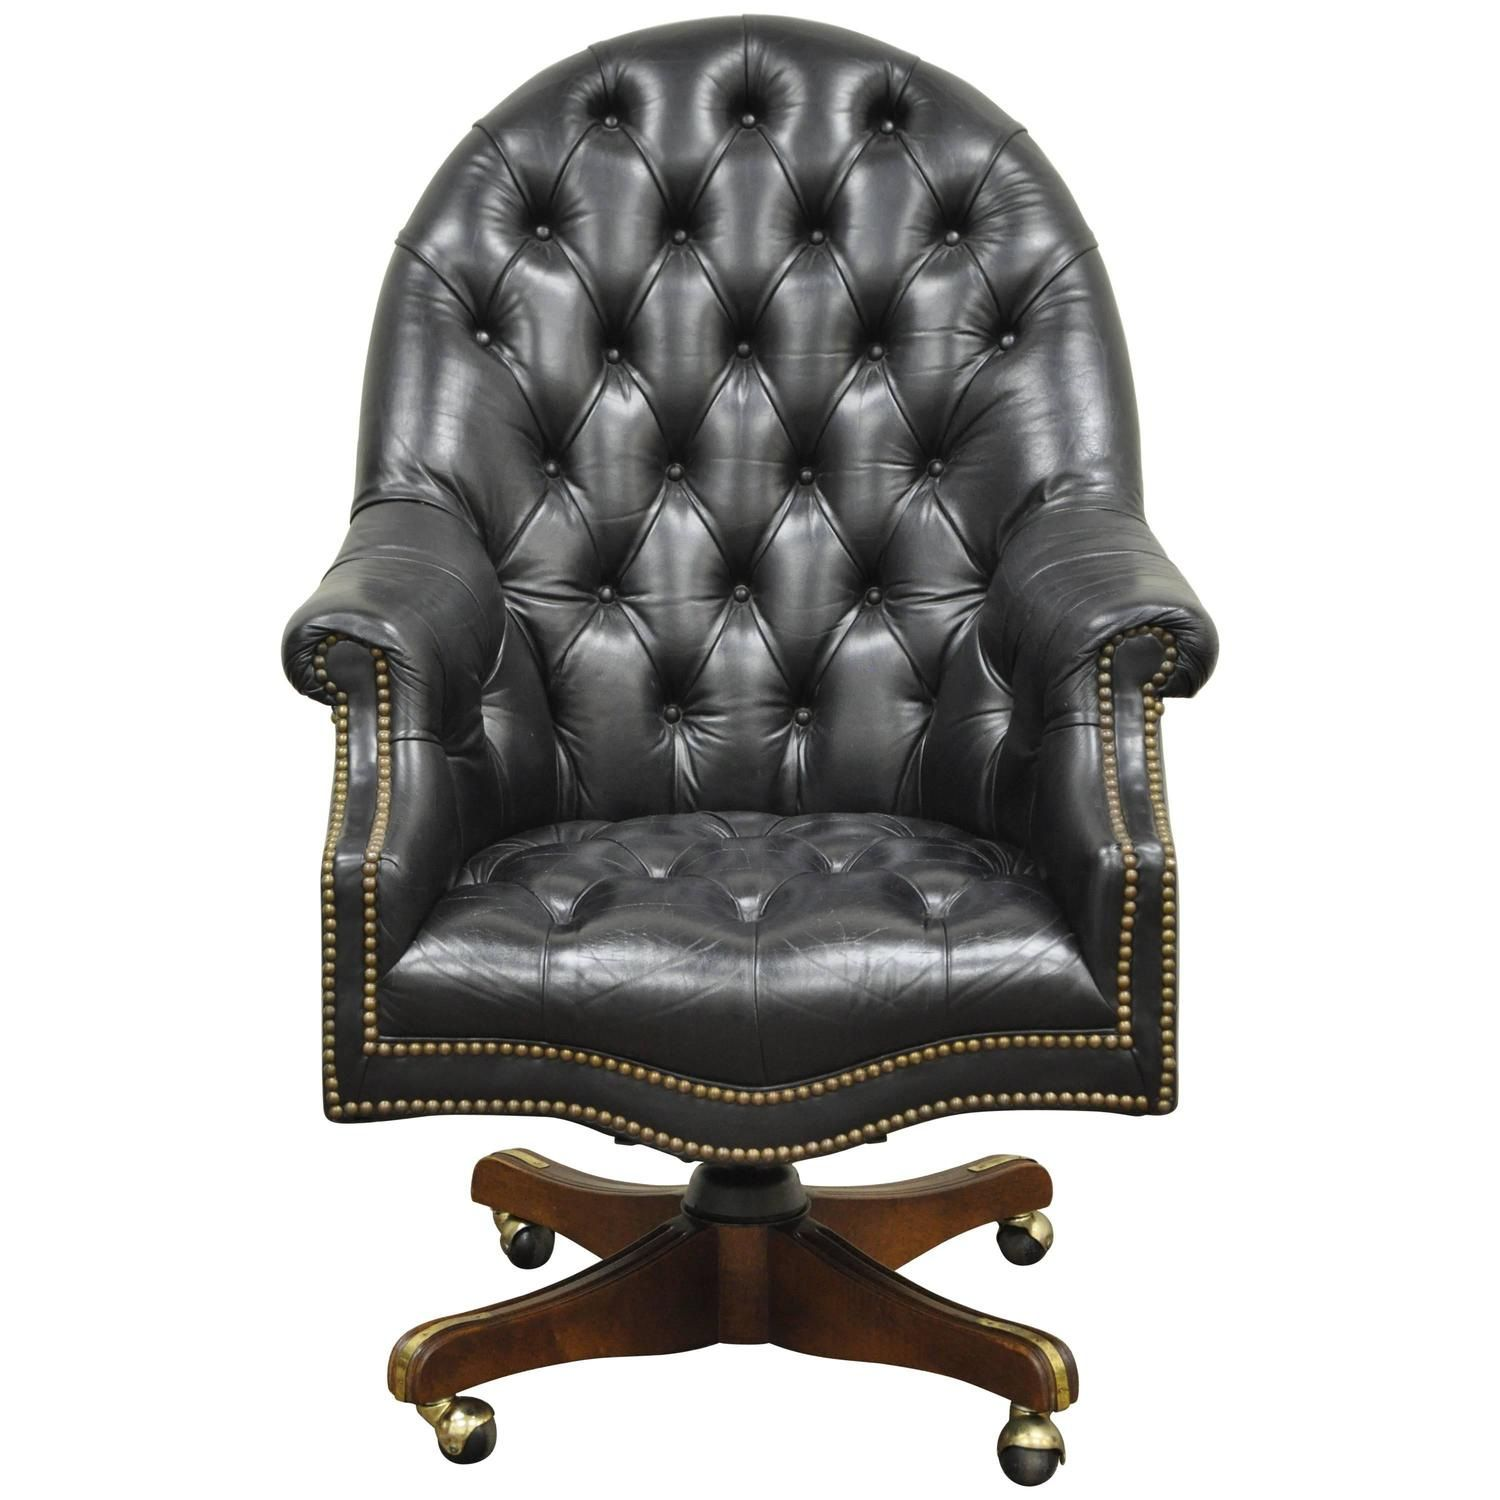 Leather Tufted Office Chair Expensive Home Furniture Check More At Http Www Drjamesghoodblog